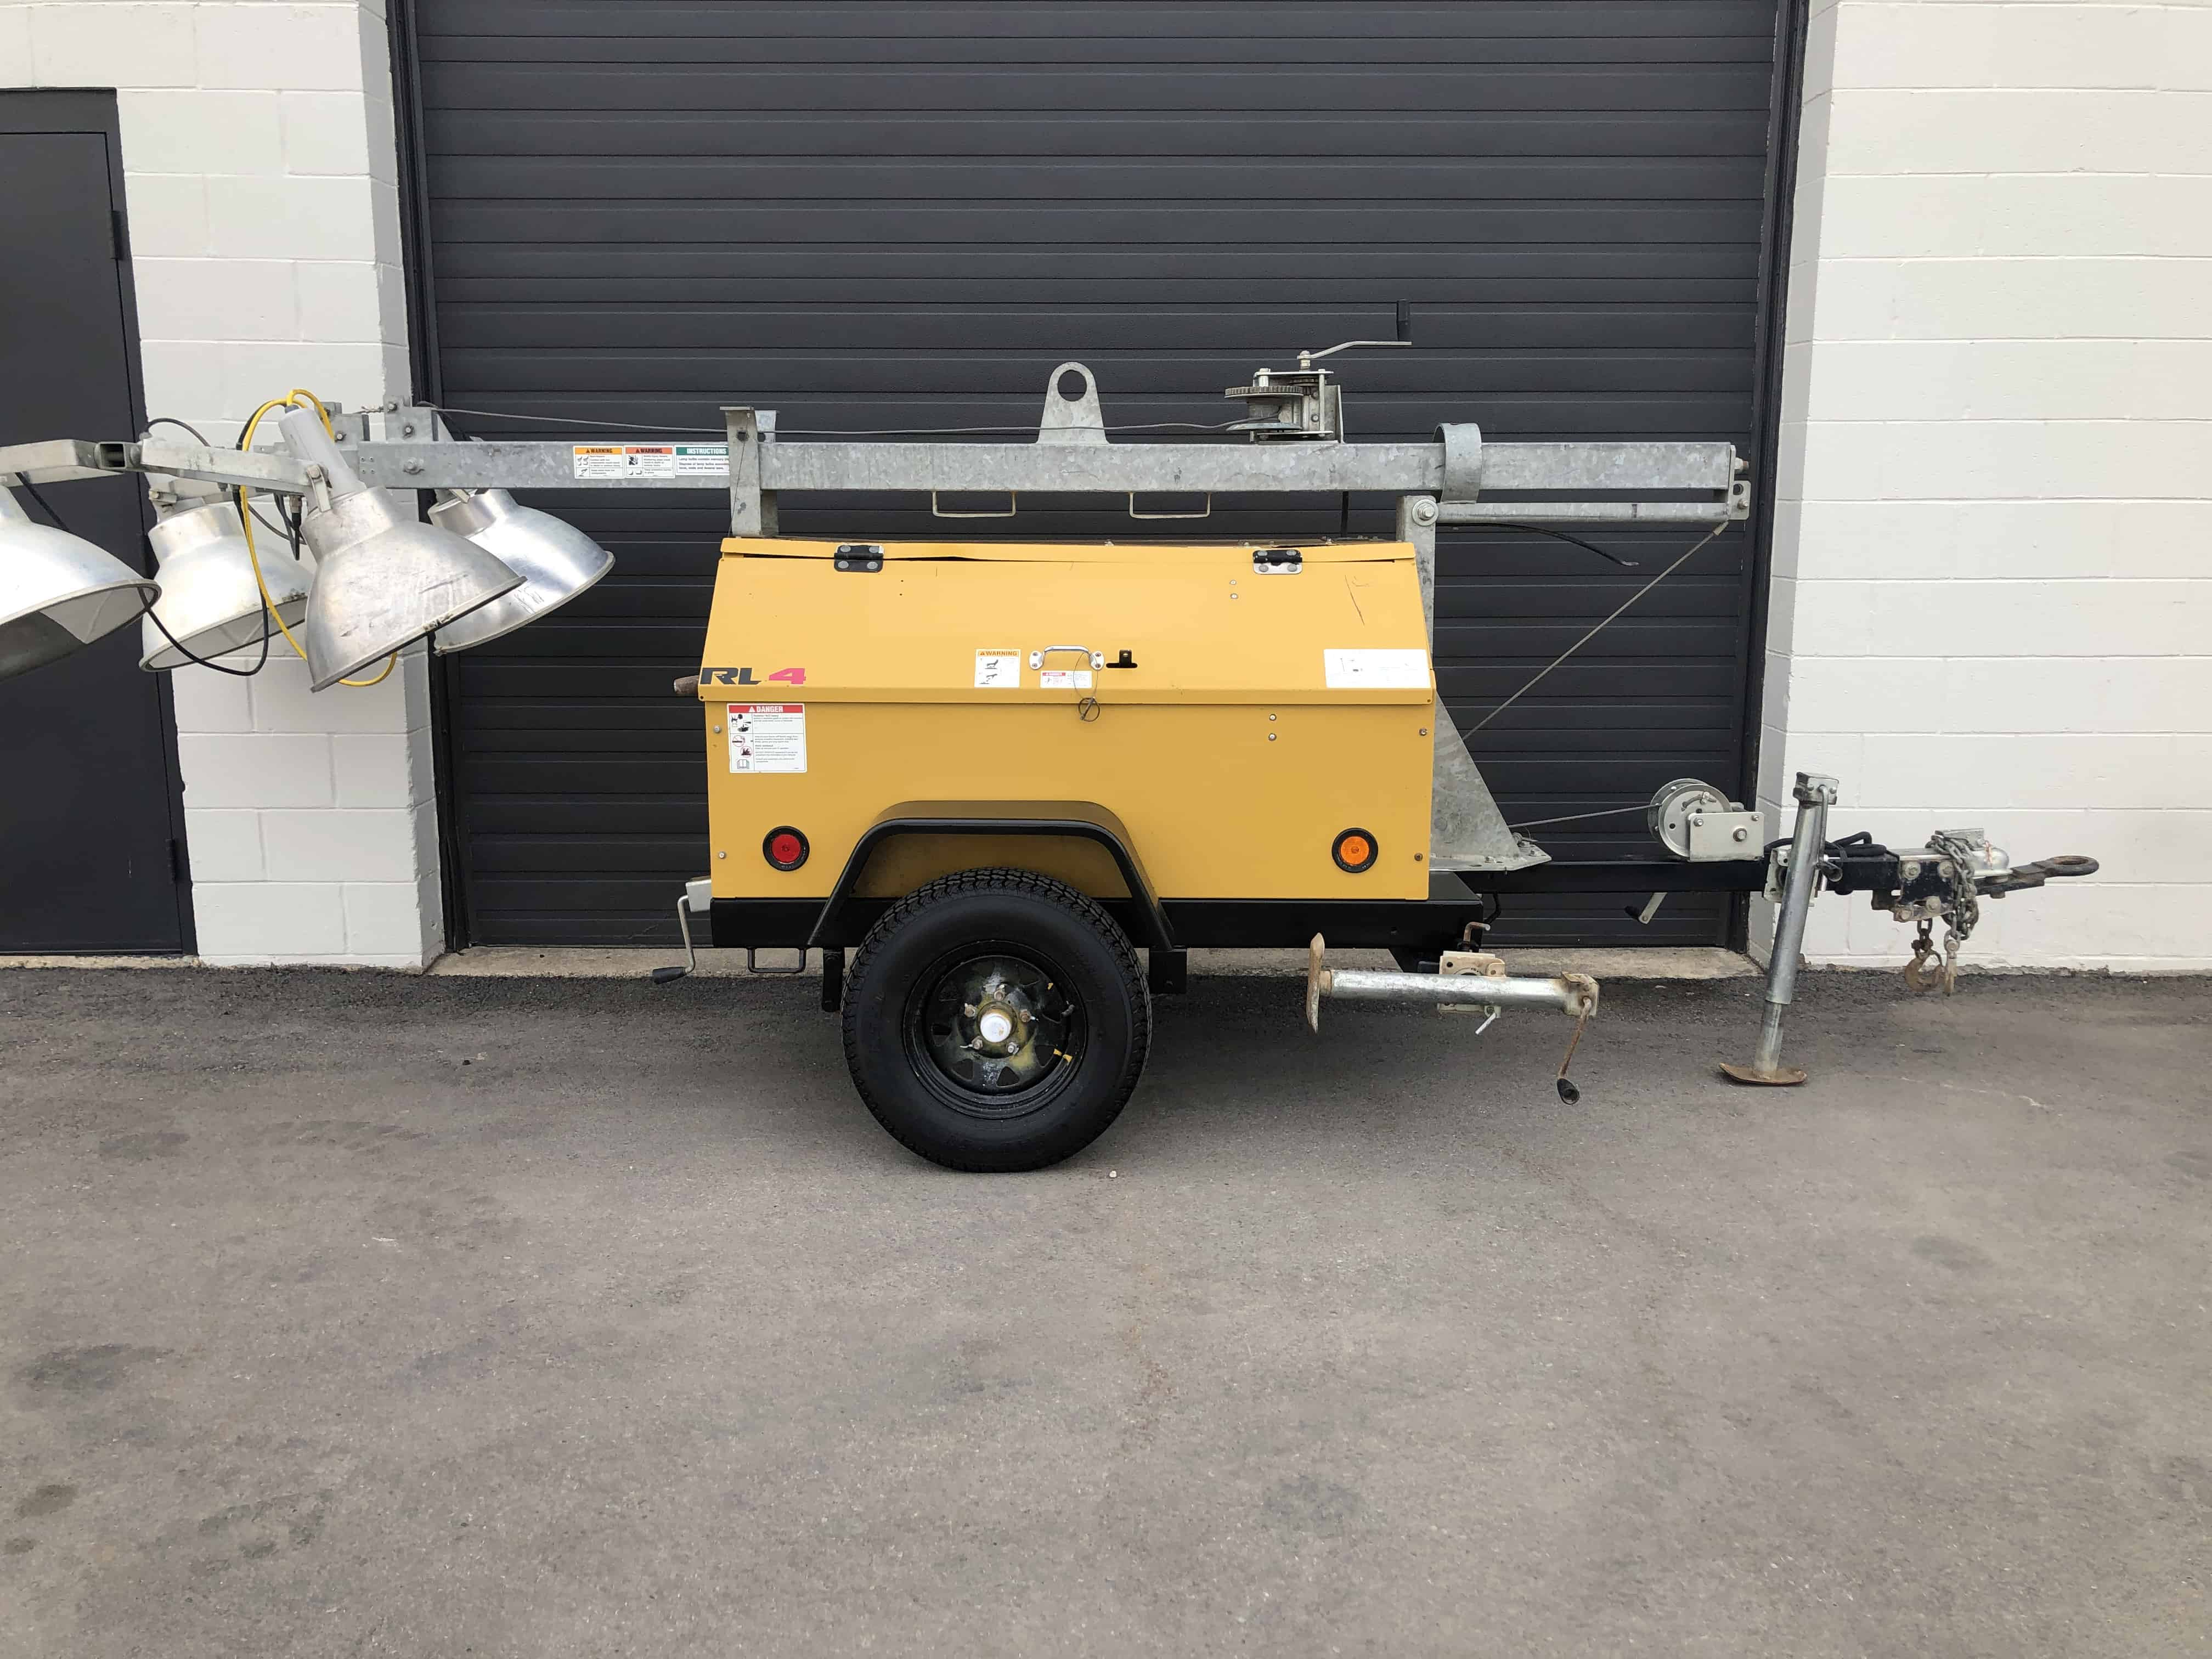 Used Terex RL4 6kw light tower for sale Vancouver, Kelowna BC